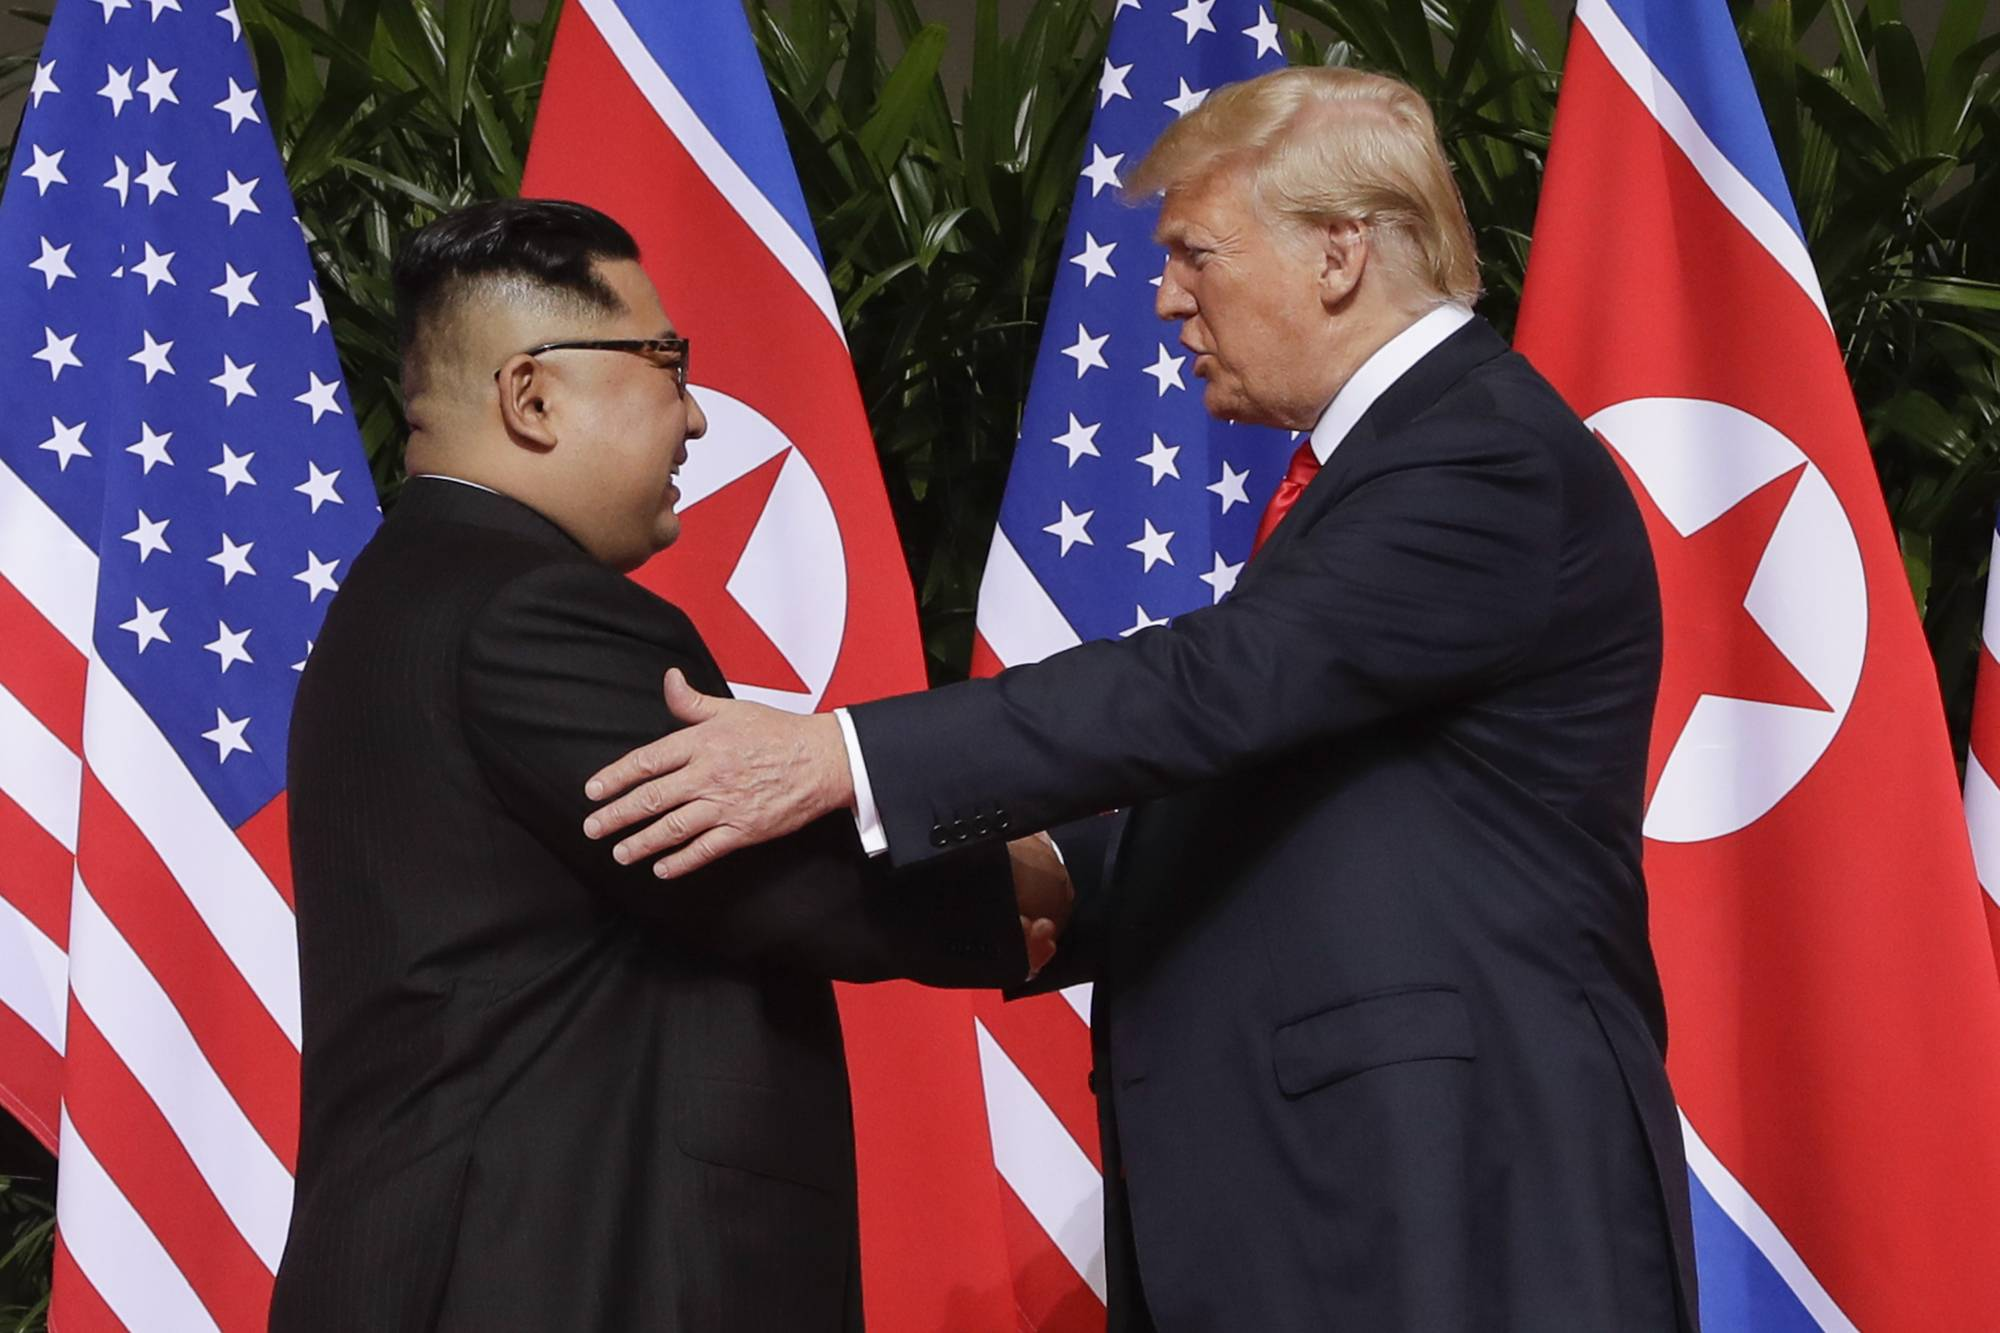 U.S. President Donald Trump shakes hands with North Korea leader Kim Jong Un at the Capella resort on Sentosa Island in Singapore. President Donald Trump has already met with Russian President Vladimir Putin twice, but he is eager to recreate in Finland the heady experience that he had last month with North Korean leader Kim Jong Un. That Singapore summit became a mass media event complete with powerful presidential images.